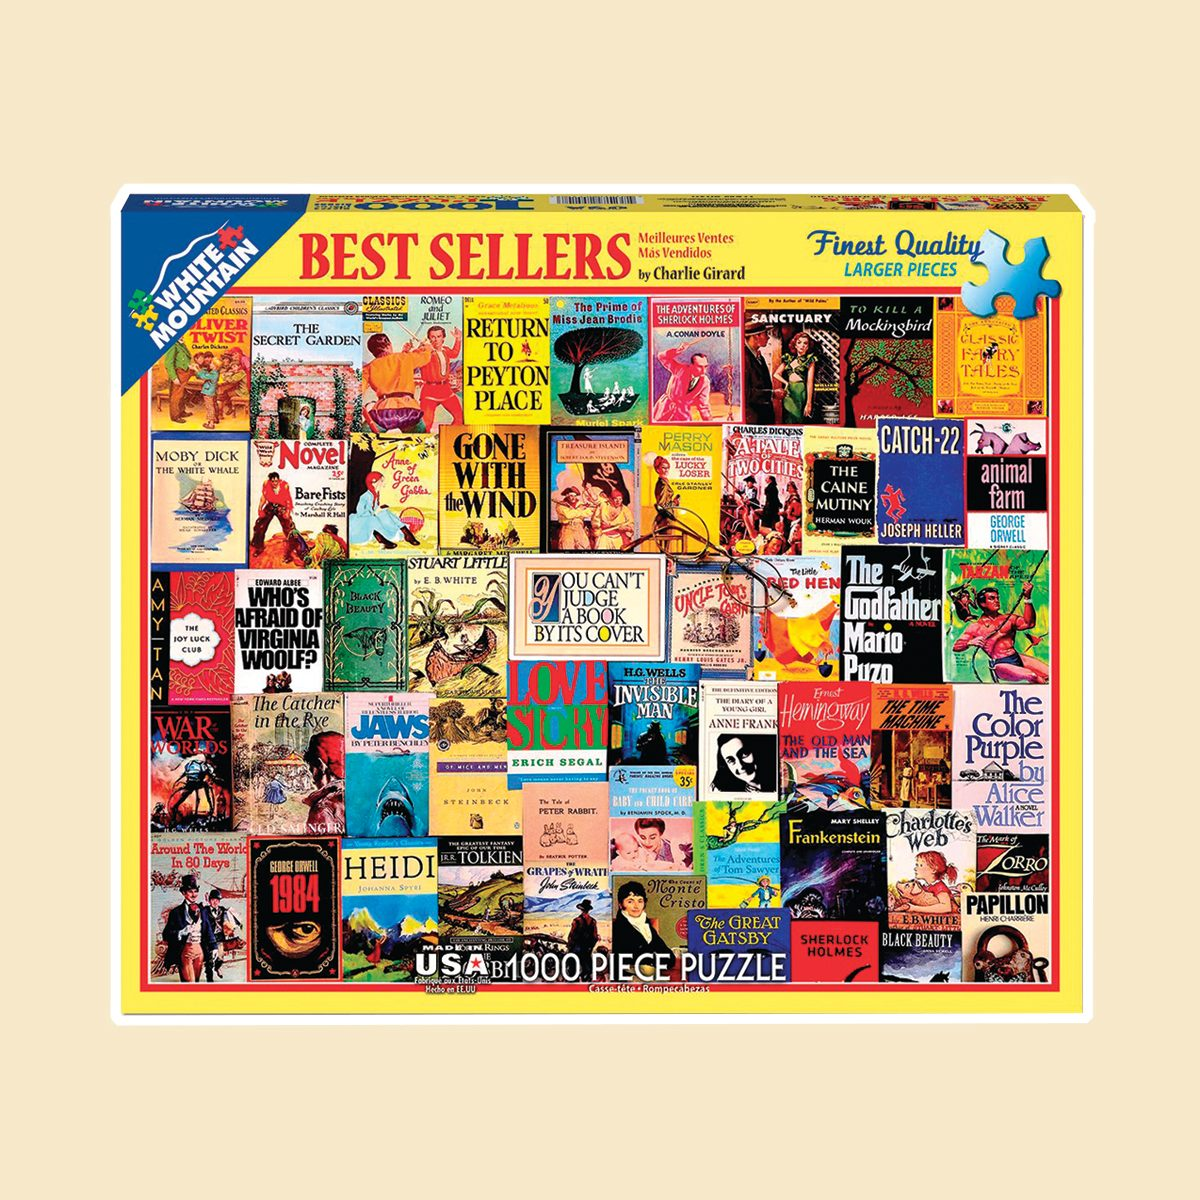 "White Mountain Puzzles ""Best Sellers"", Vintage Book Covers Collage, 1000 Piece Jigsaw Puzzle"